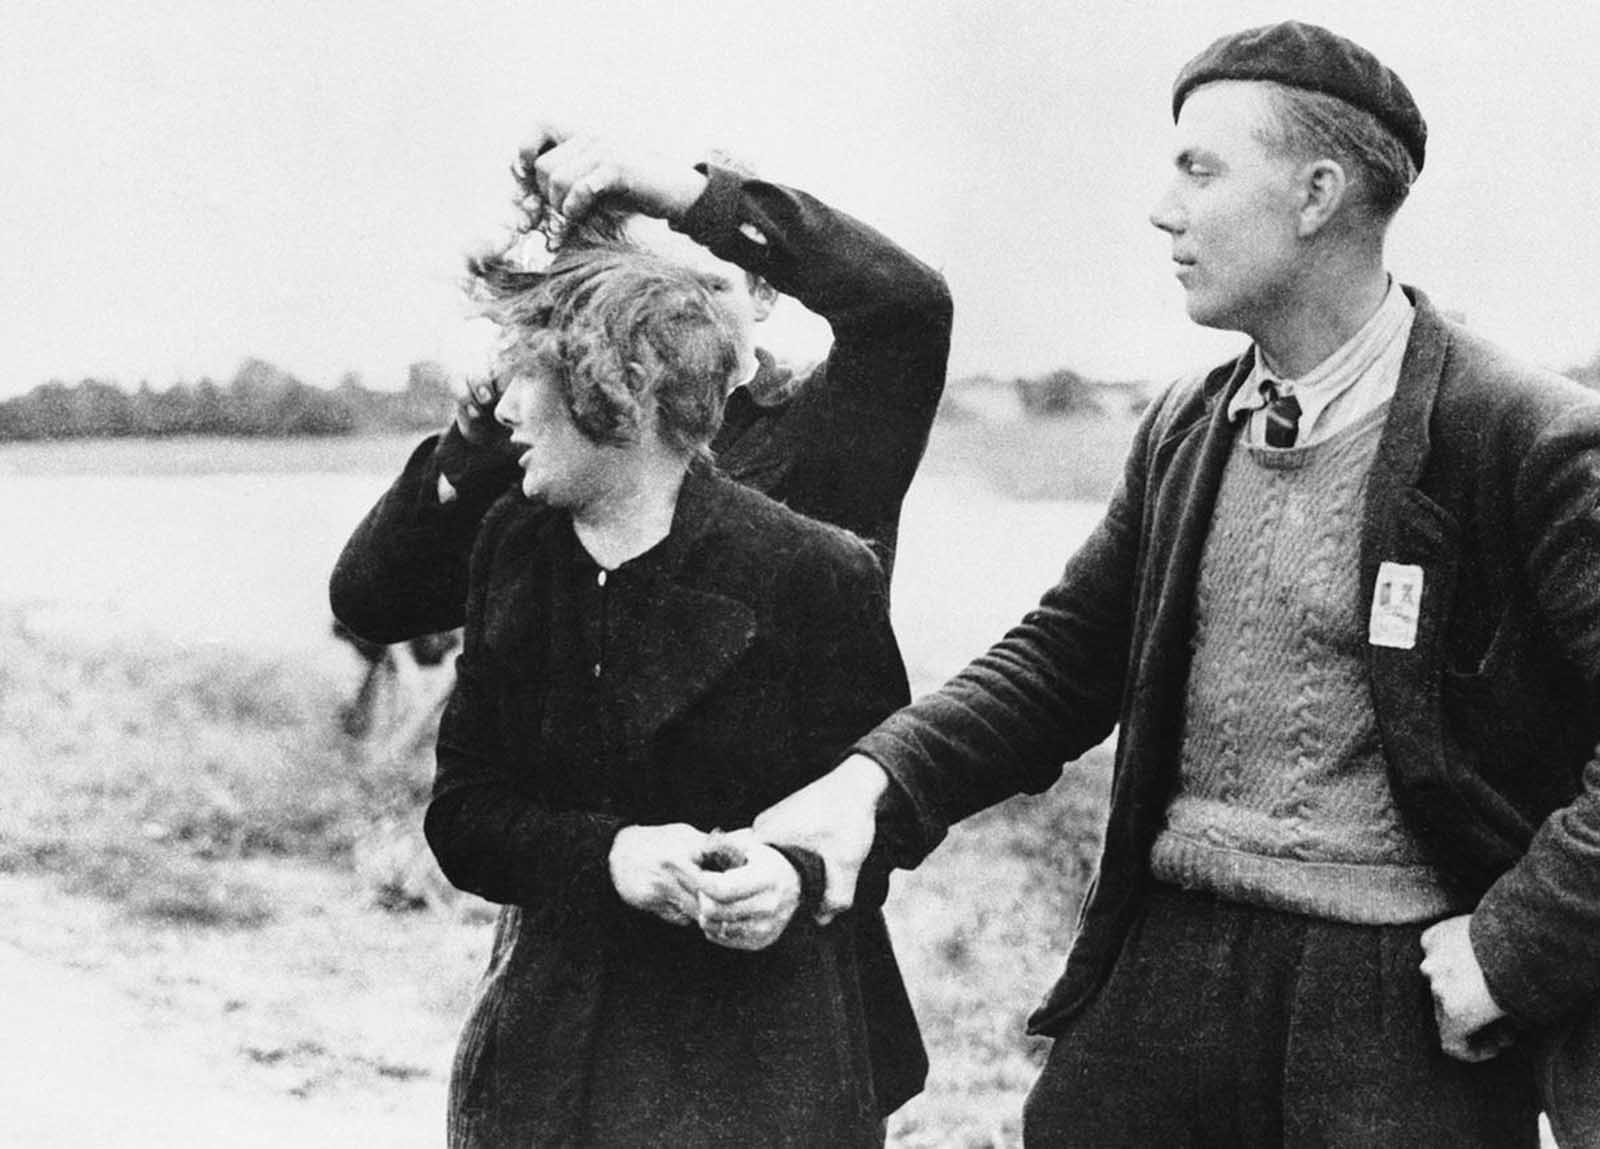 Grande Guillotte of Normandy, France, pays the price for being a collaborationist by having her hair sheared by avenging French patriots on July 10, 1944. Man at right looks on with grim satisfaction at the unhappy girl.